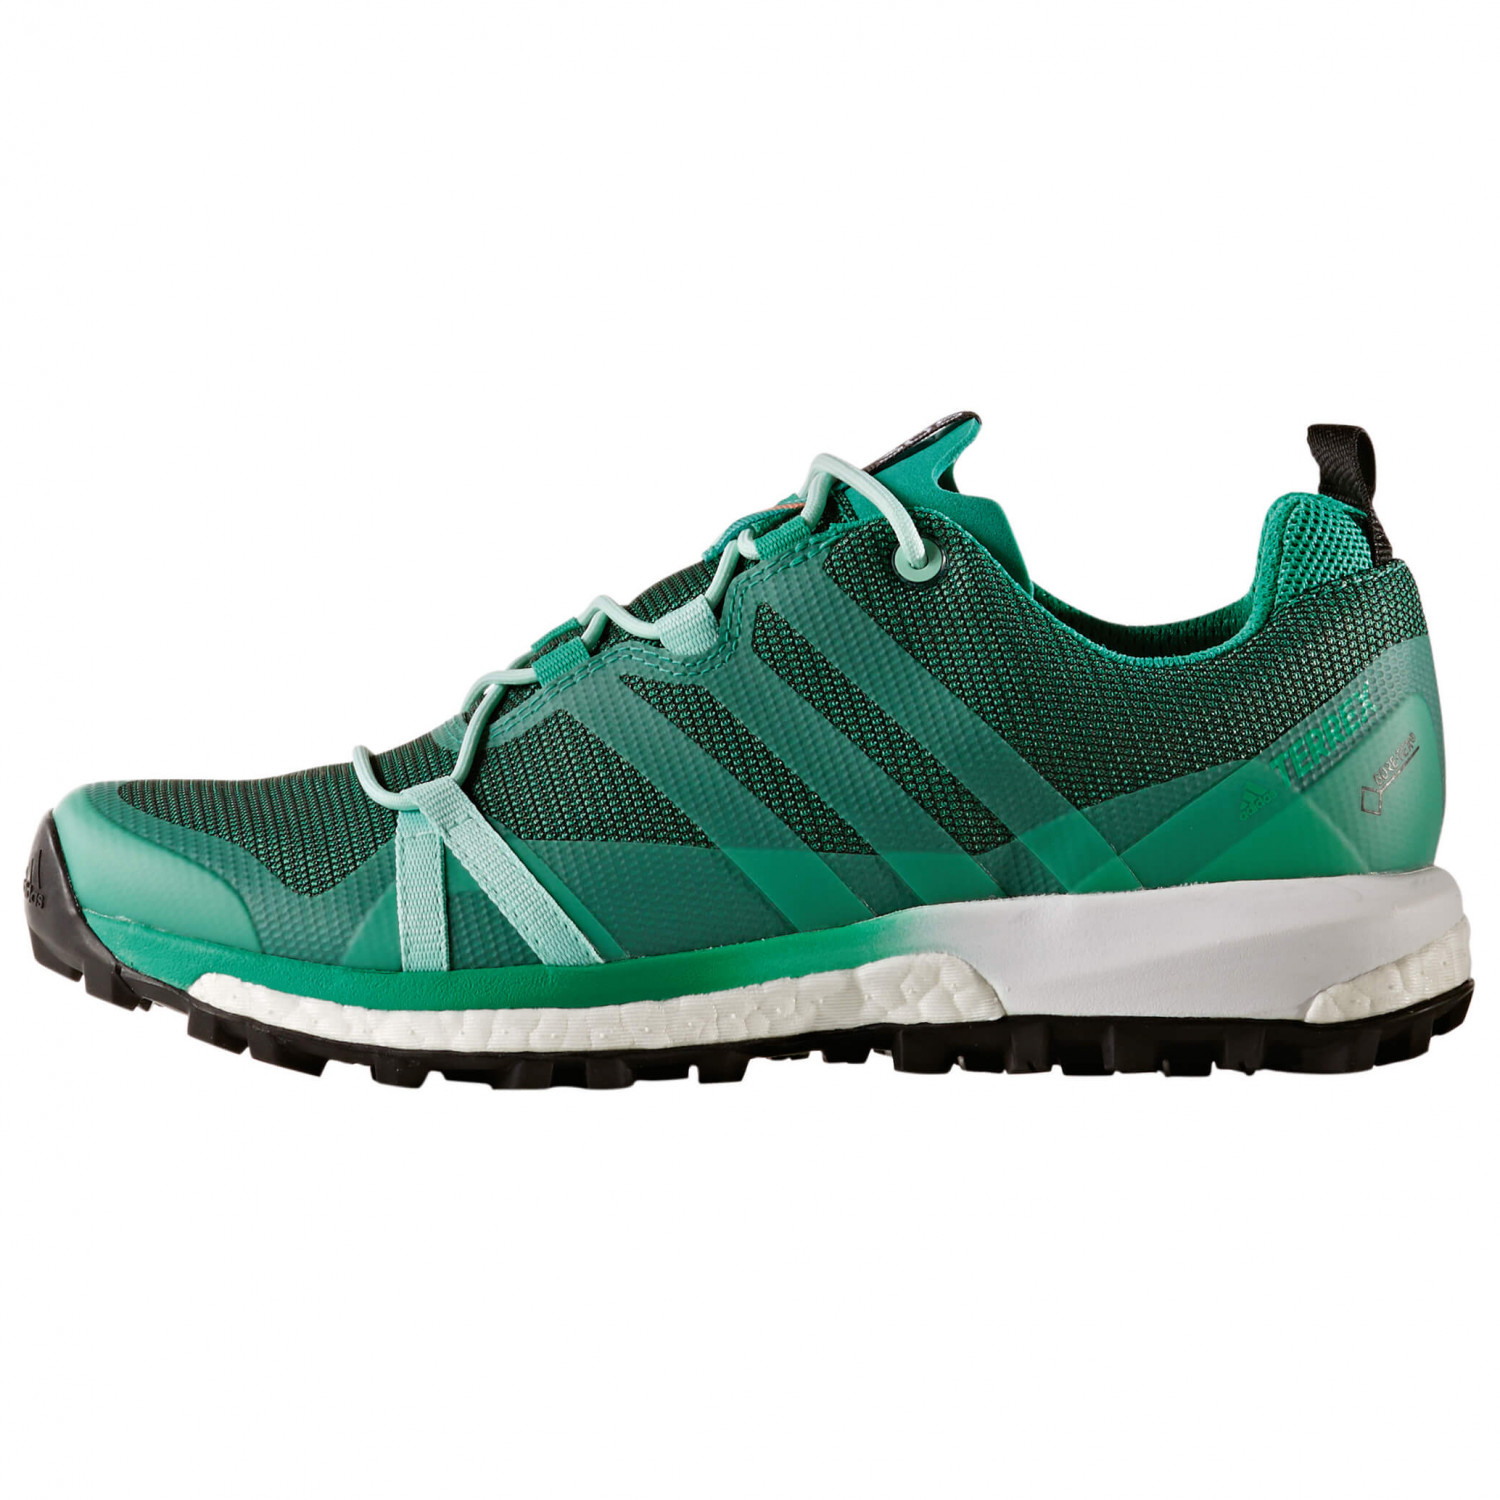 Adidas Women S Terrex Agravic Gtx Trail Running Shoes